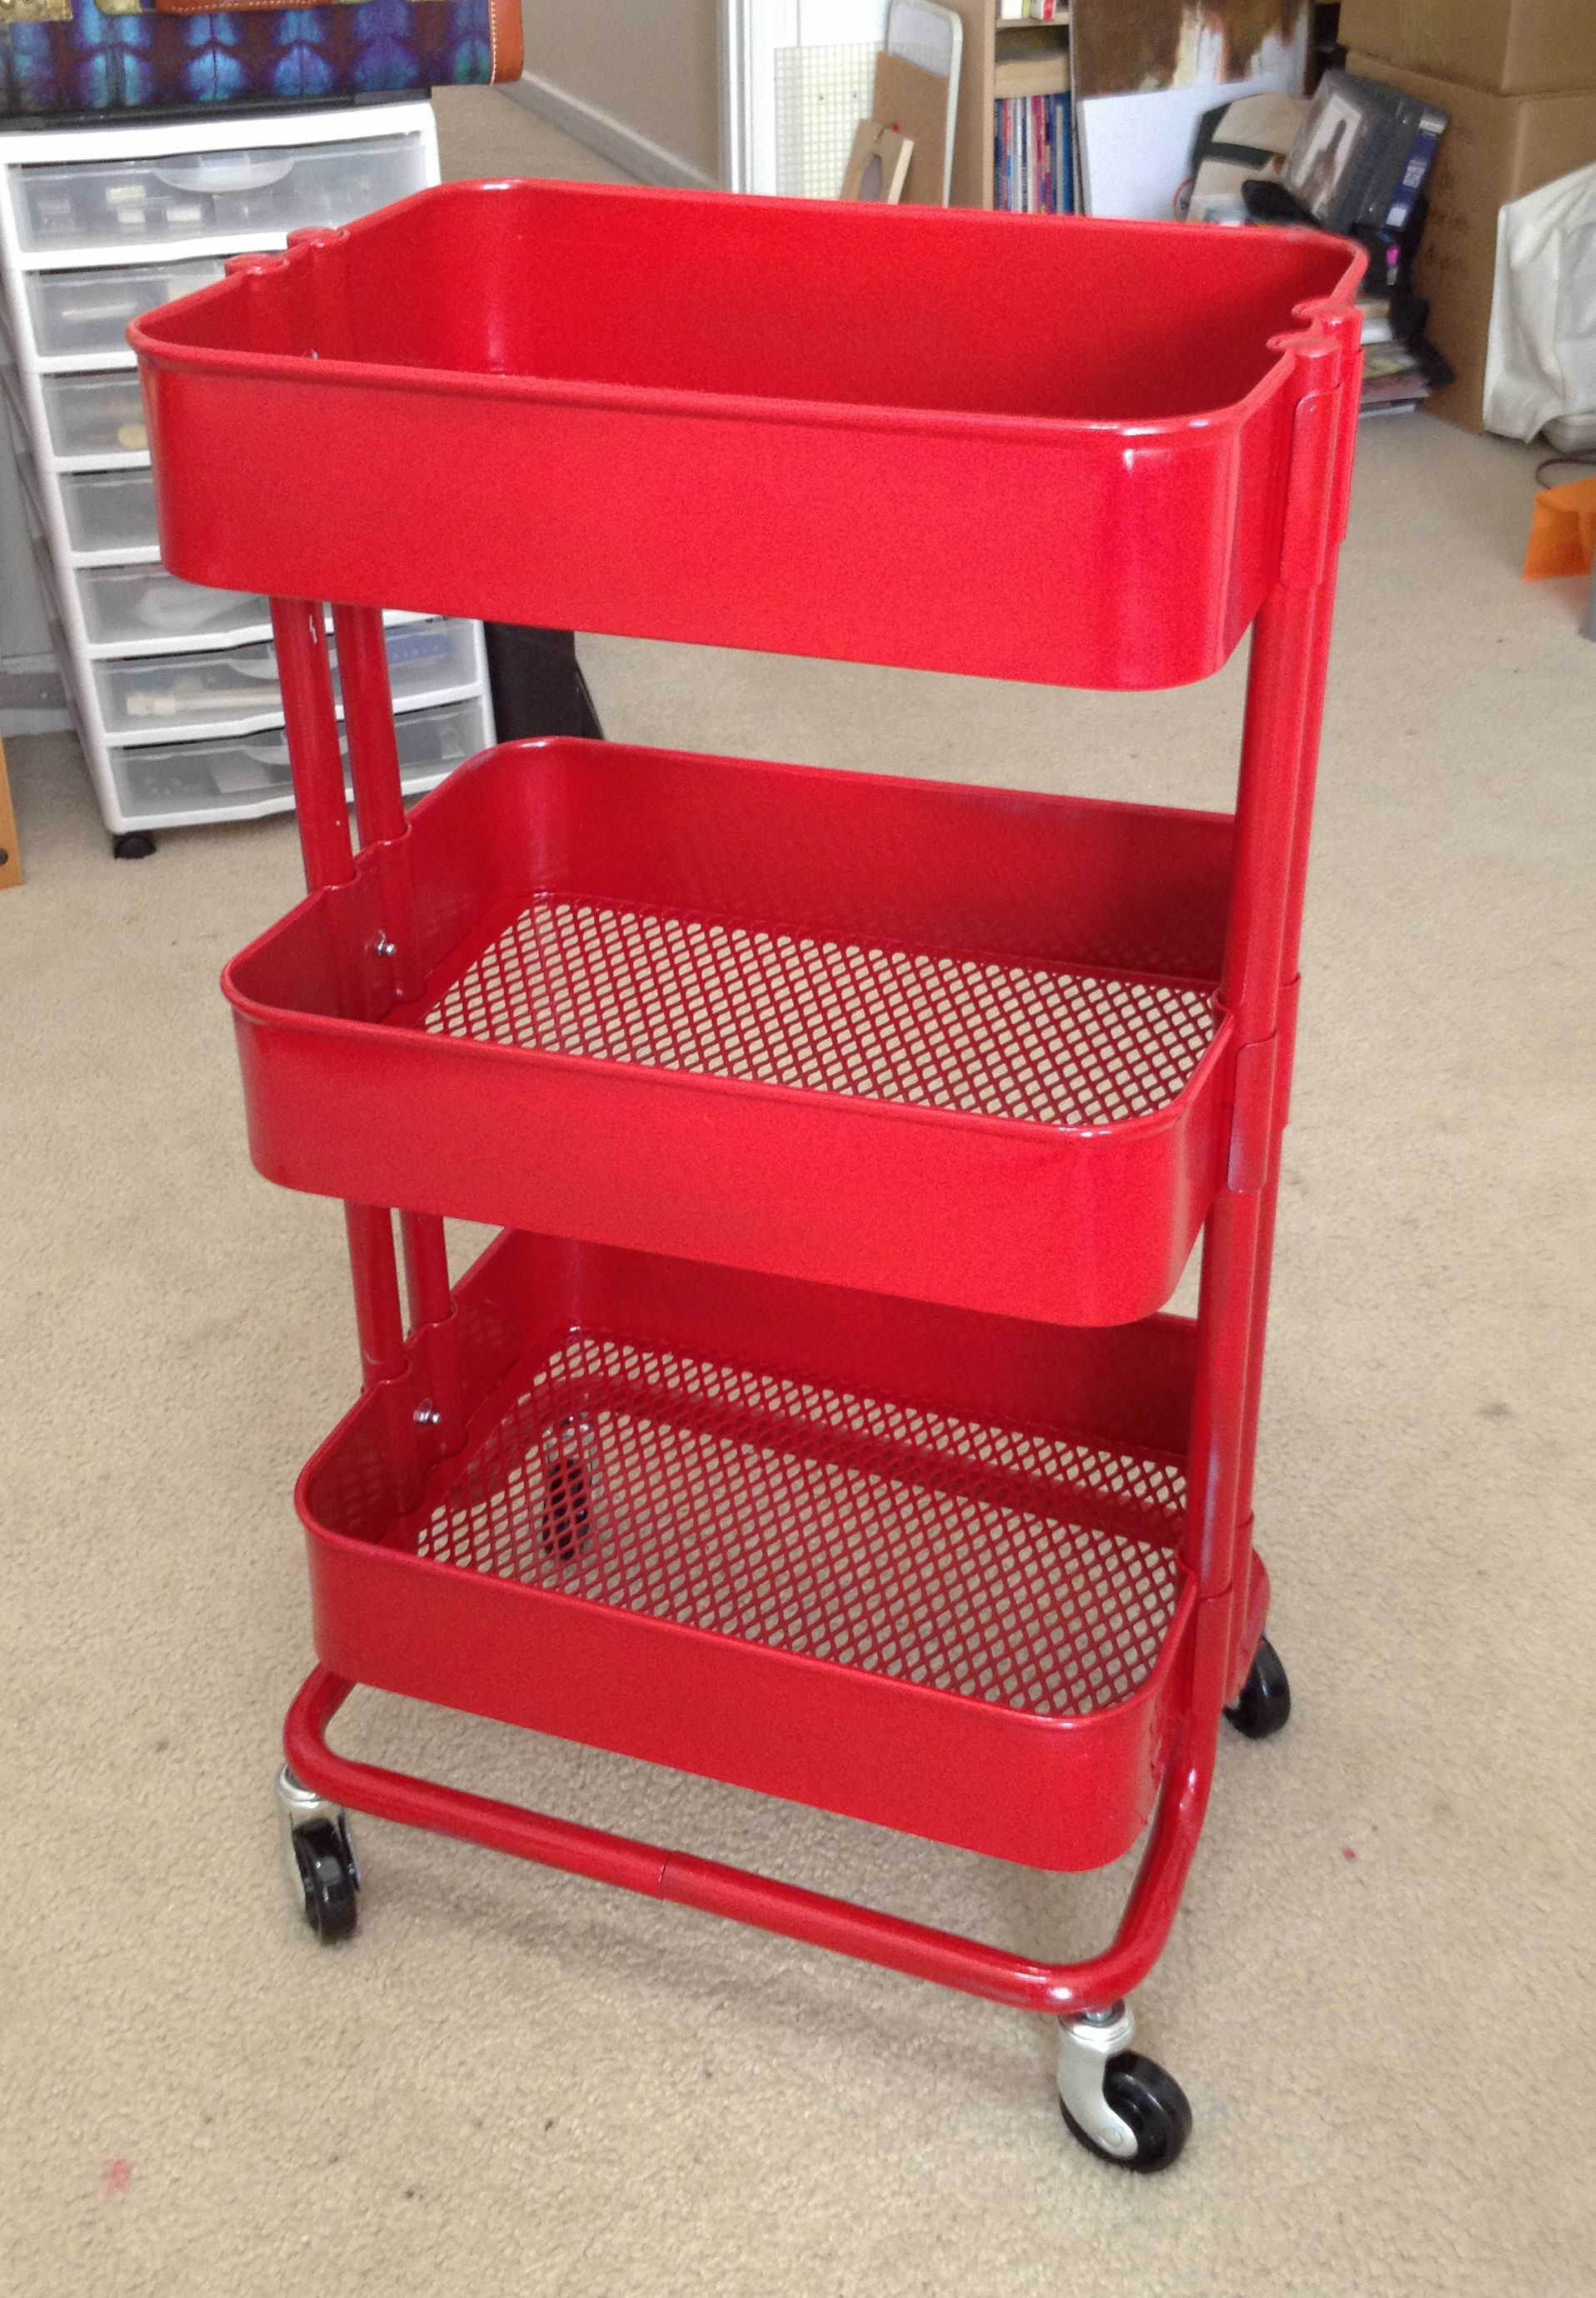 Desserte Raskog Red Spray Painted Raskog Kitchen Cart Bar Cart